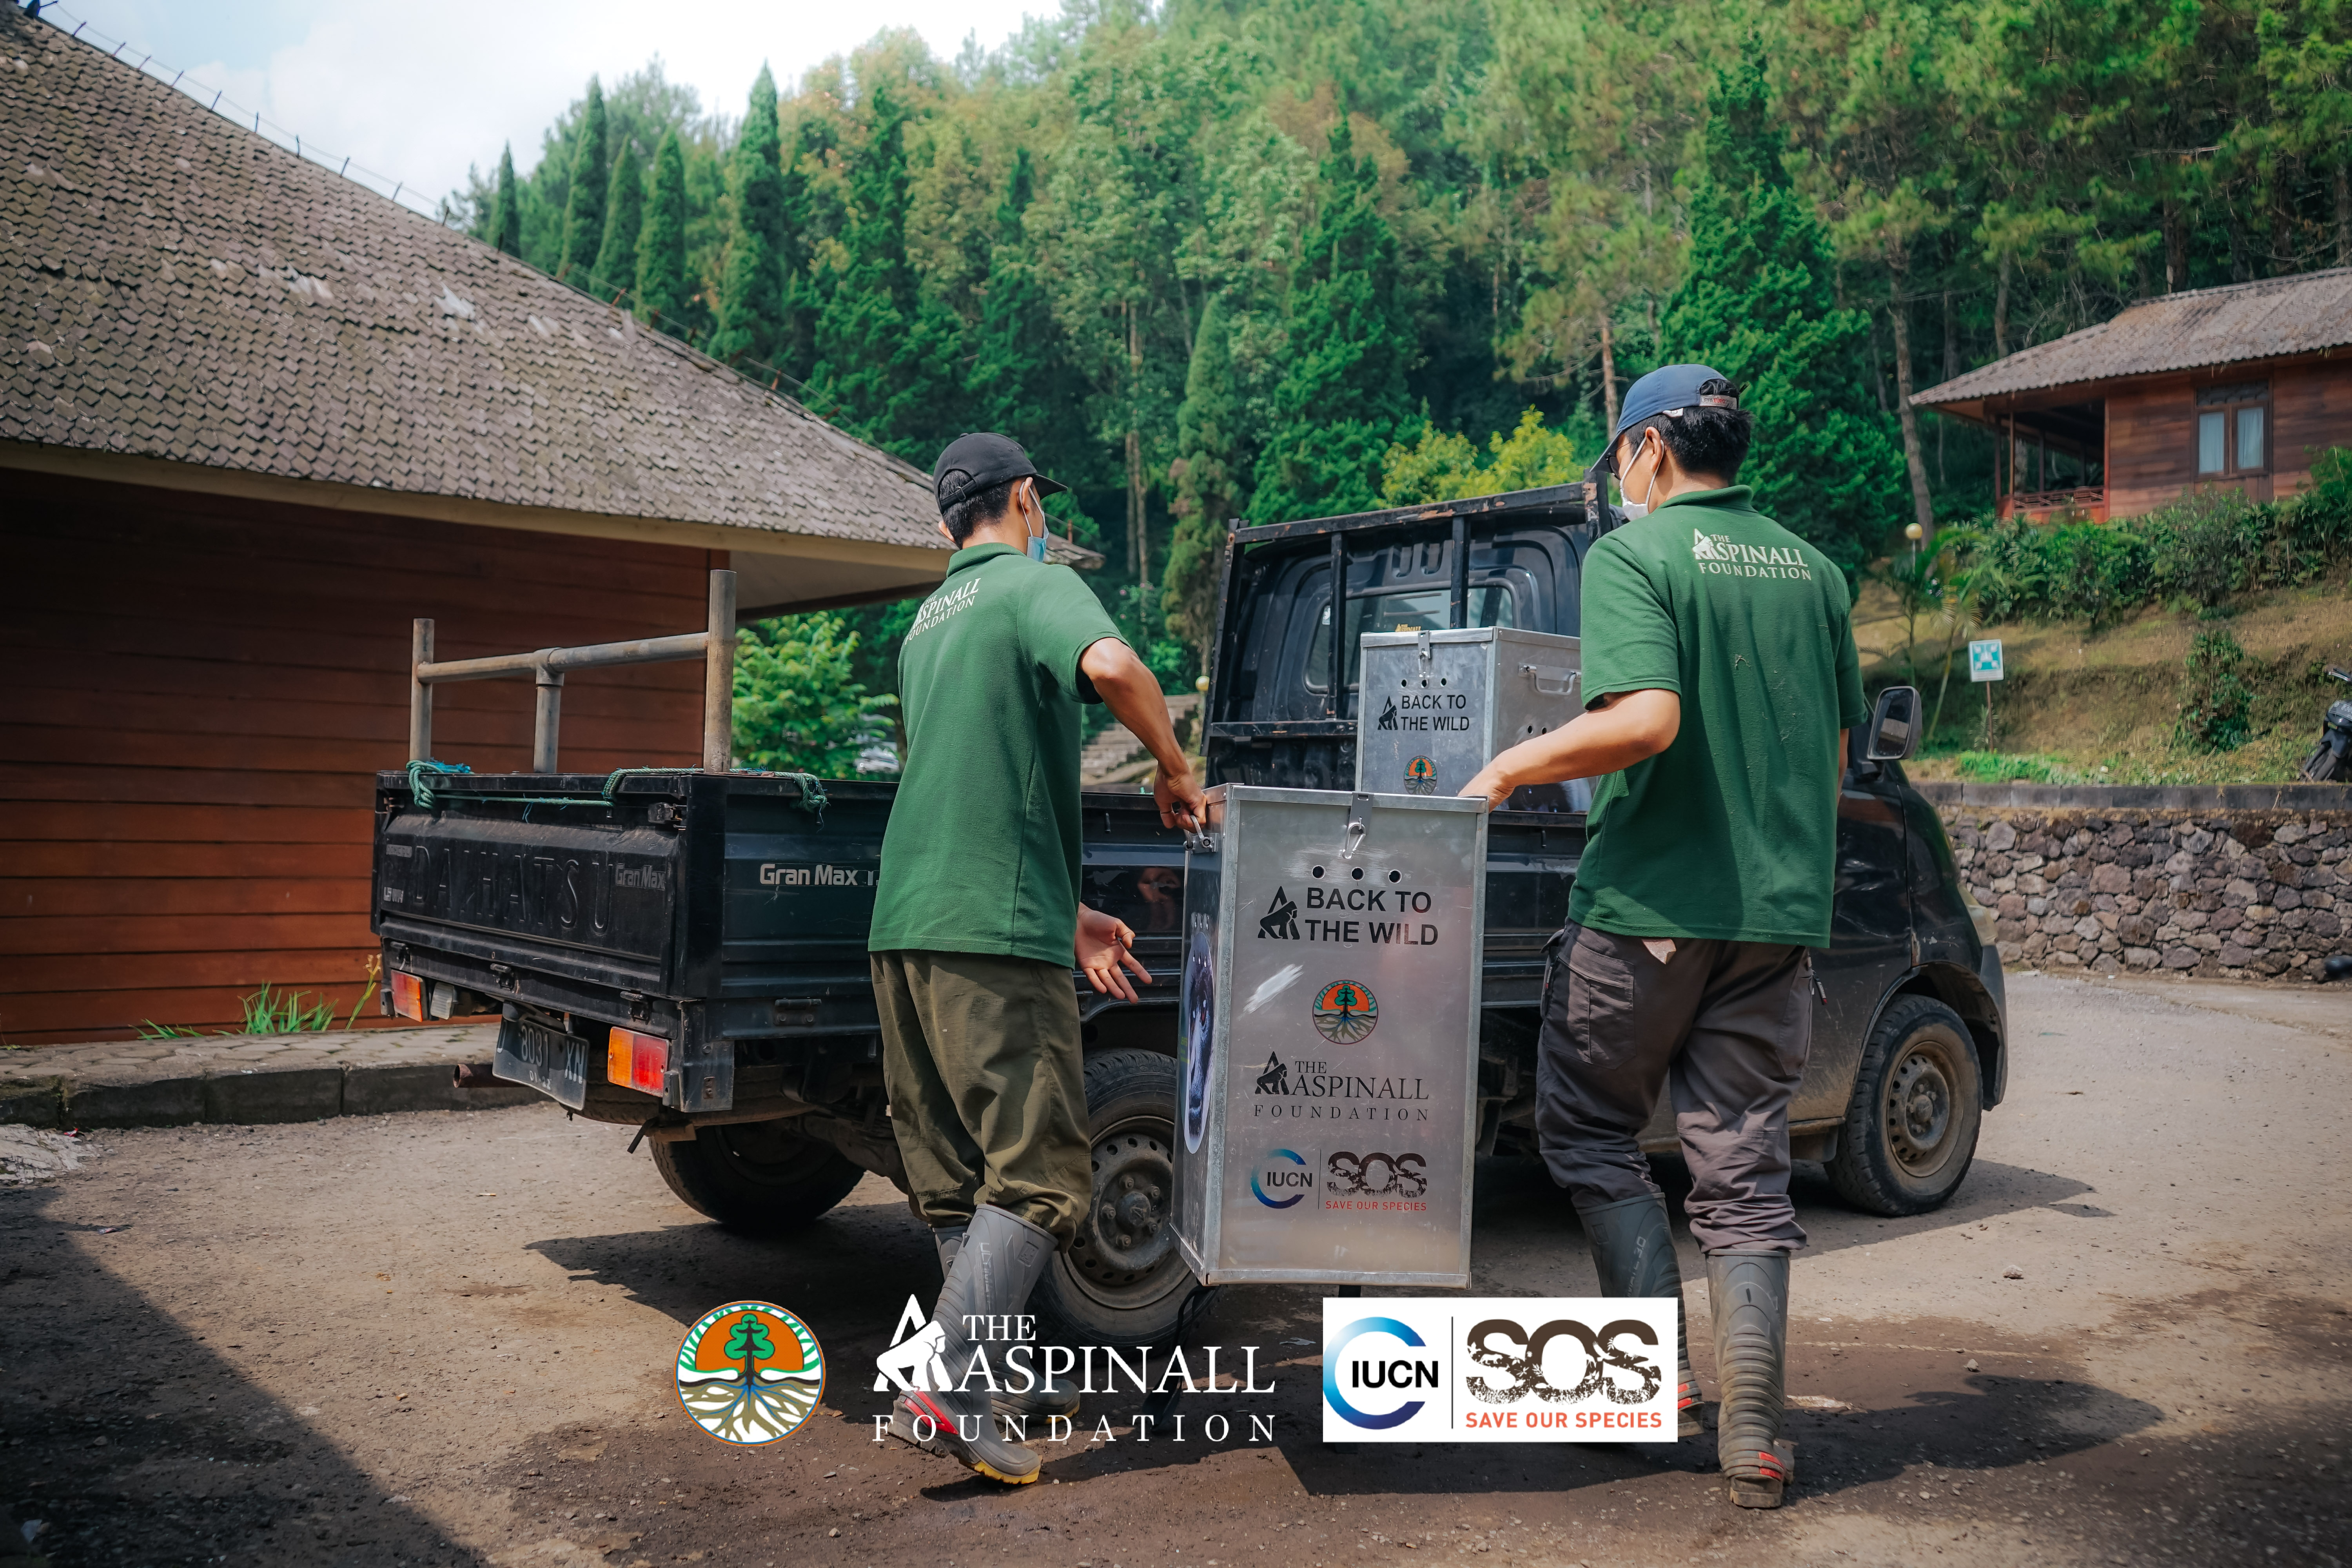 Gibbons placed in individual transportation crates for transfer to the release site (1)